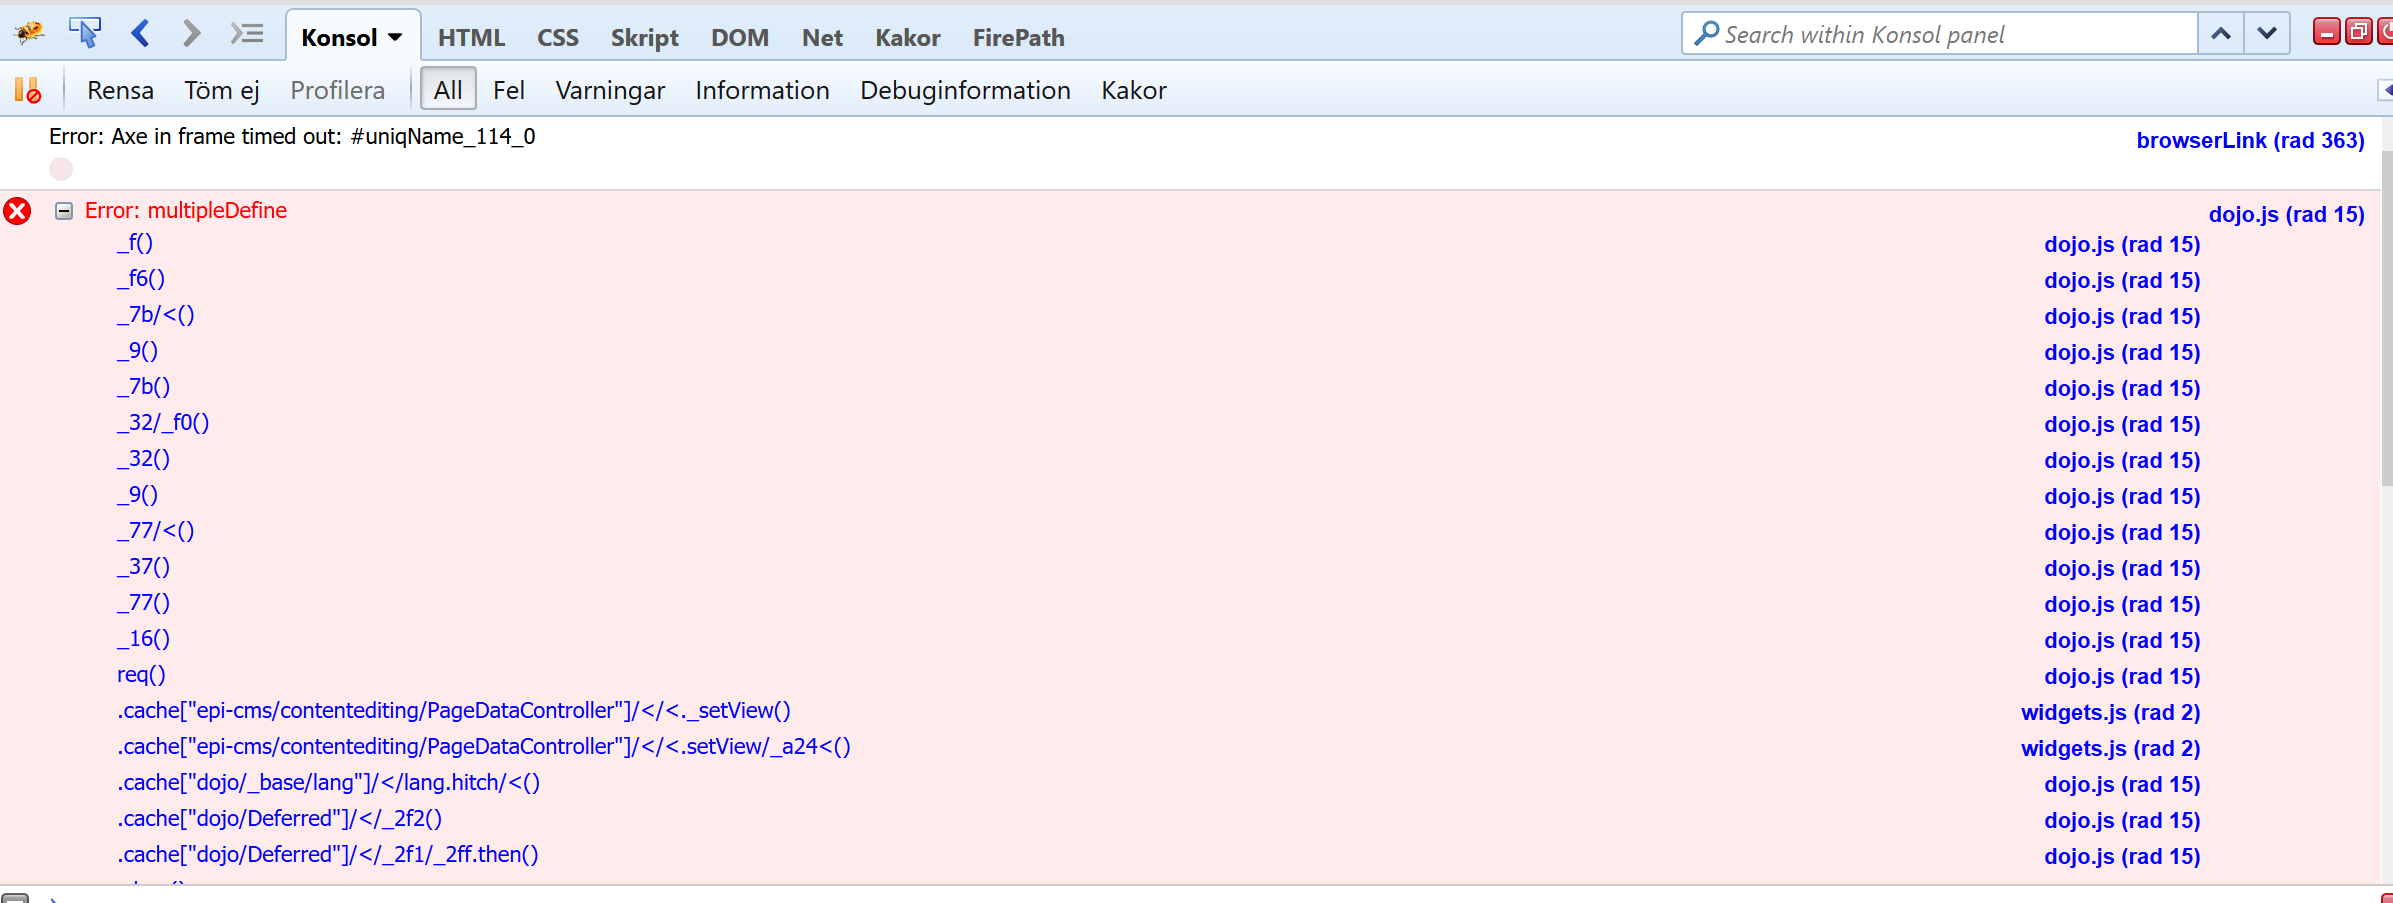 JavaScript error in EPiServer's edit mode causing dojo functionality to malfunciton.